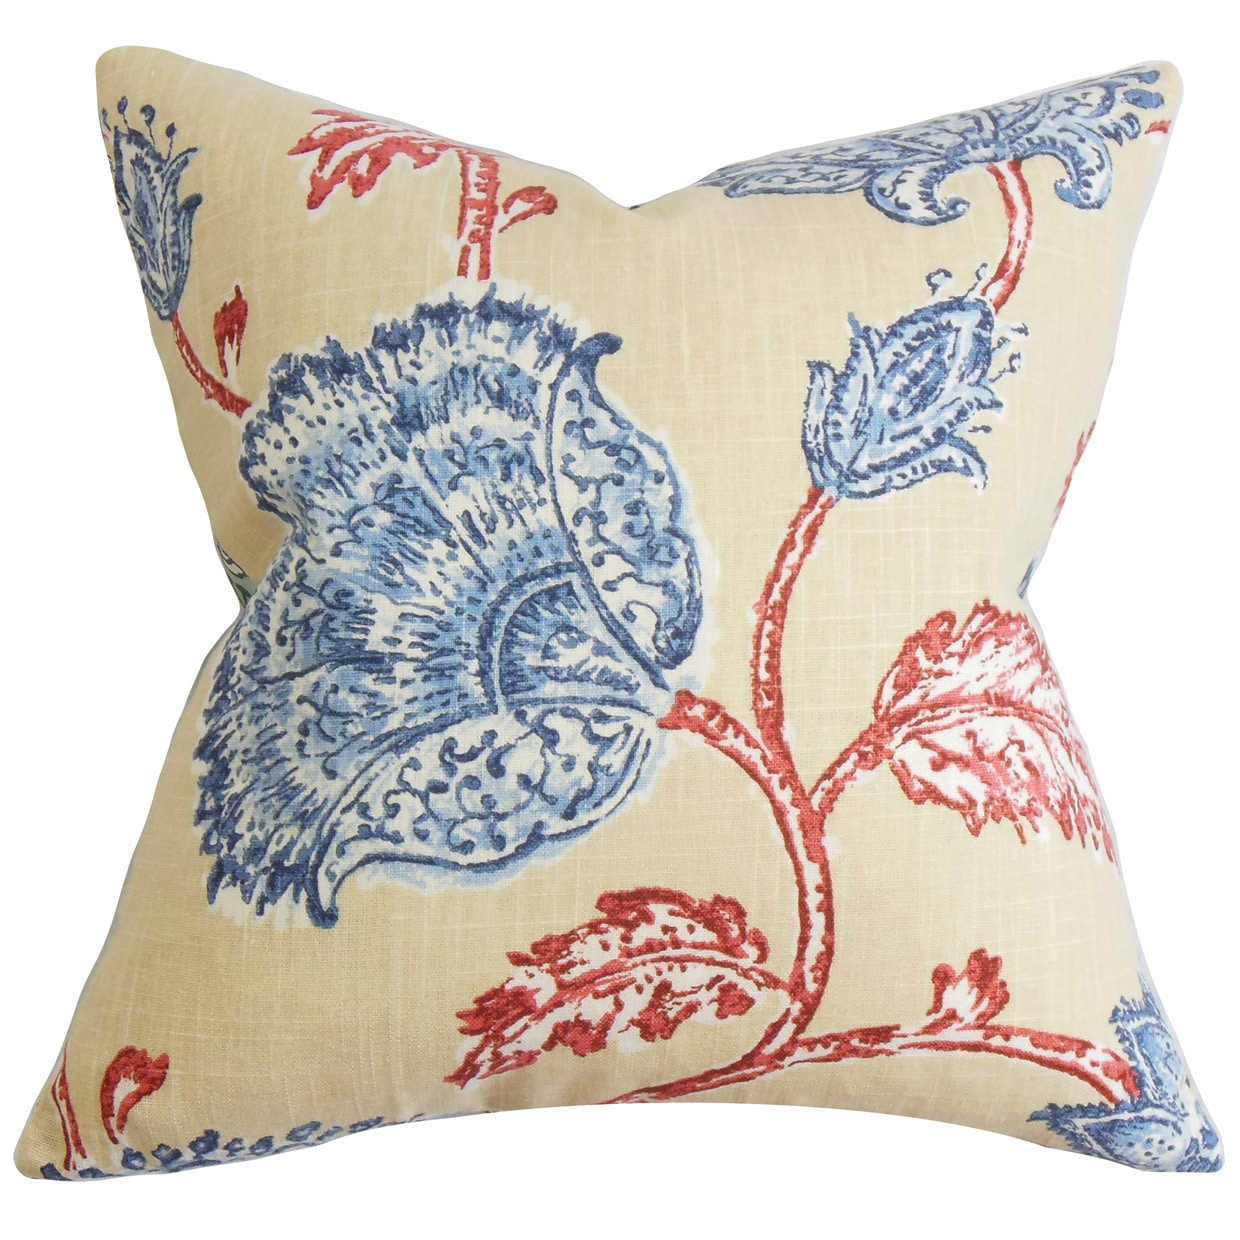 Parthenia Floral 24 x 24 Down Feather Throw Pillow Red Blue (24 x 24)